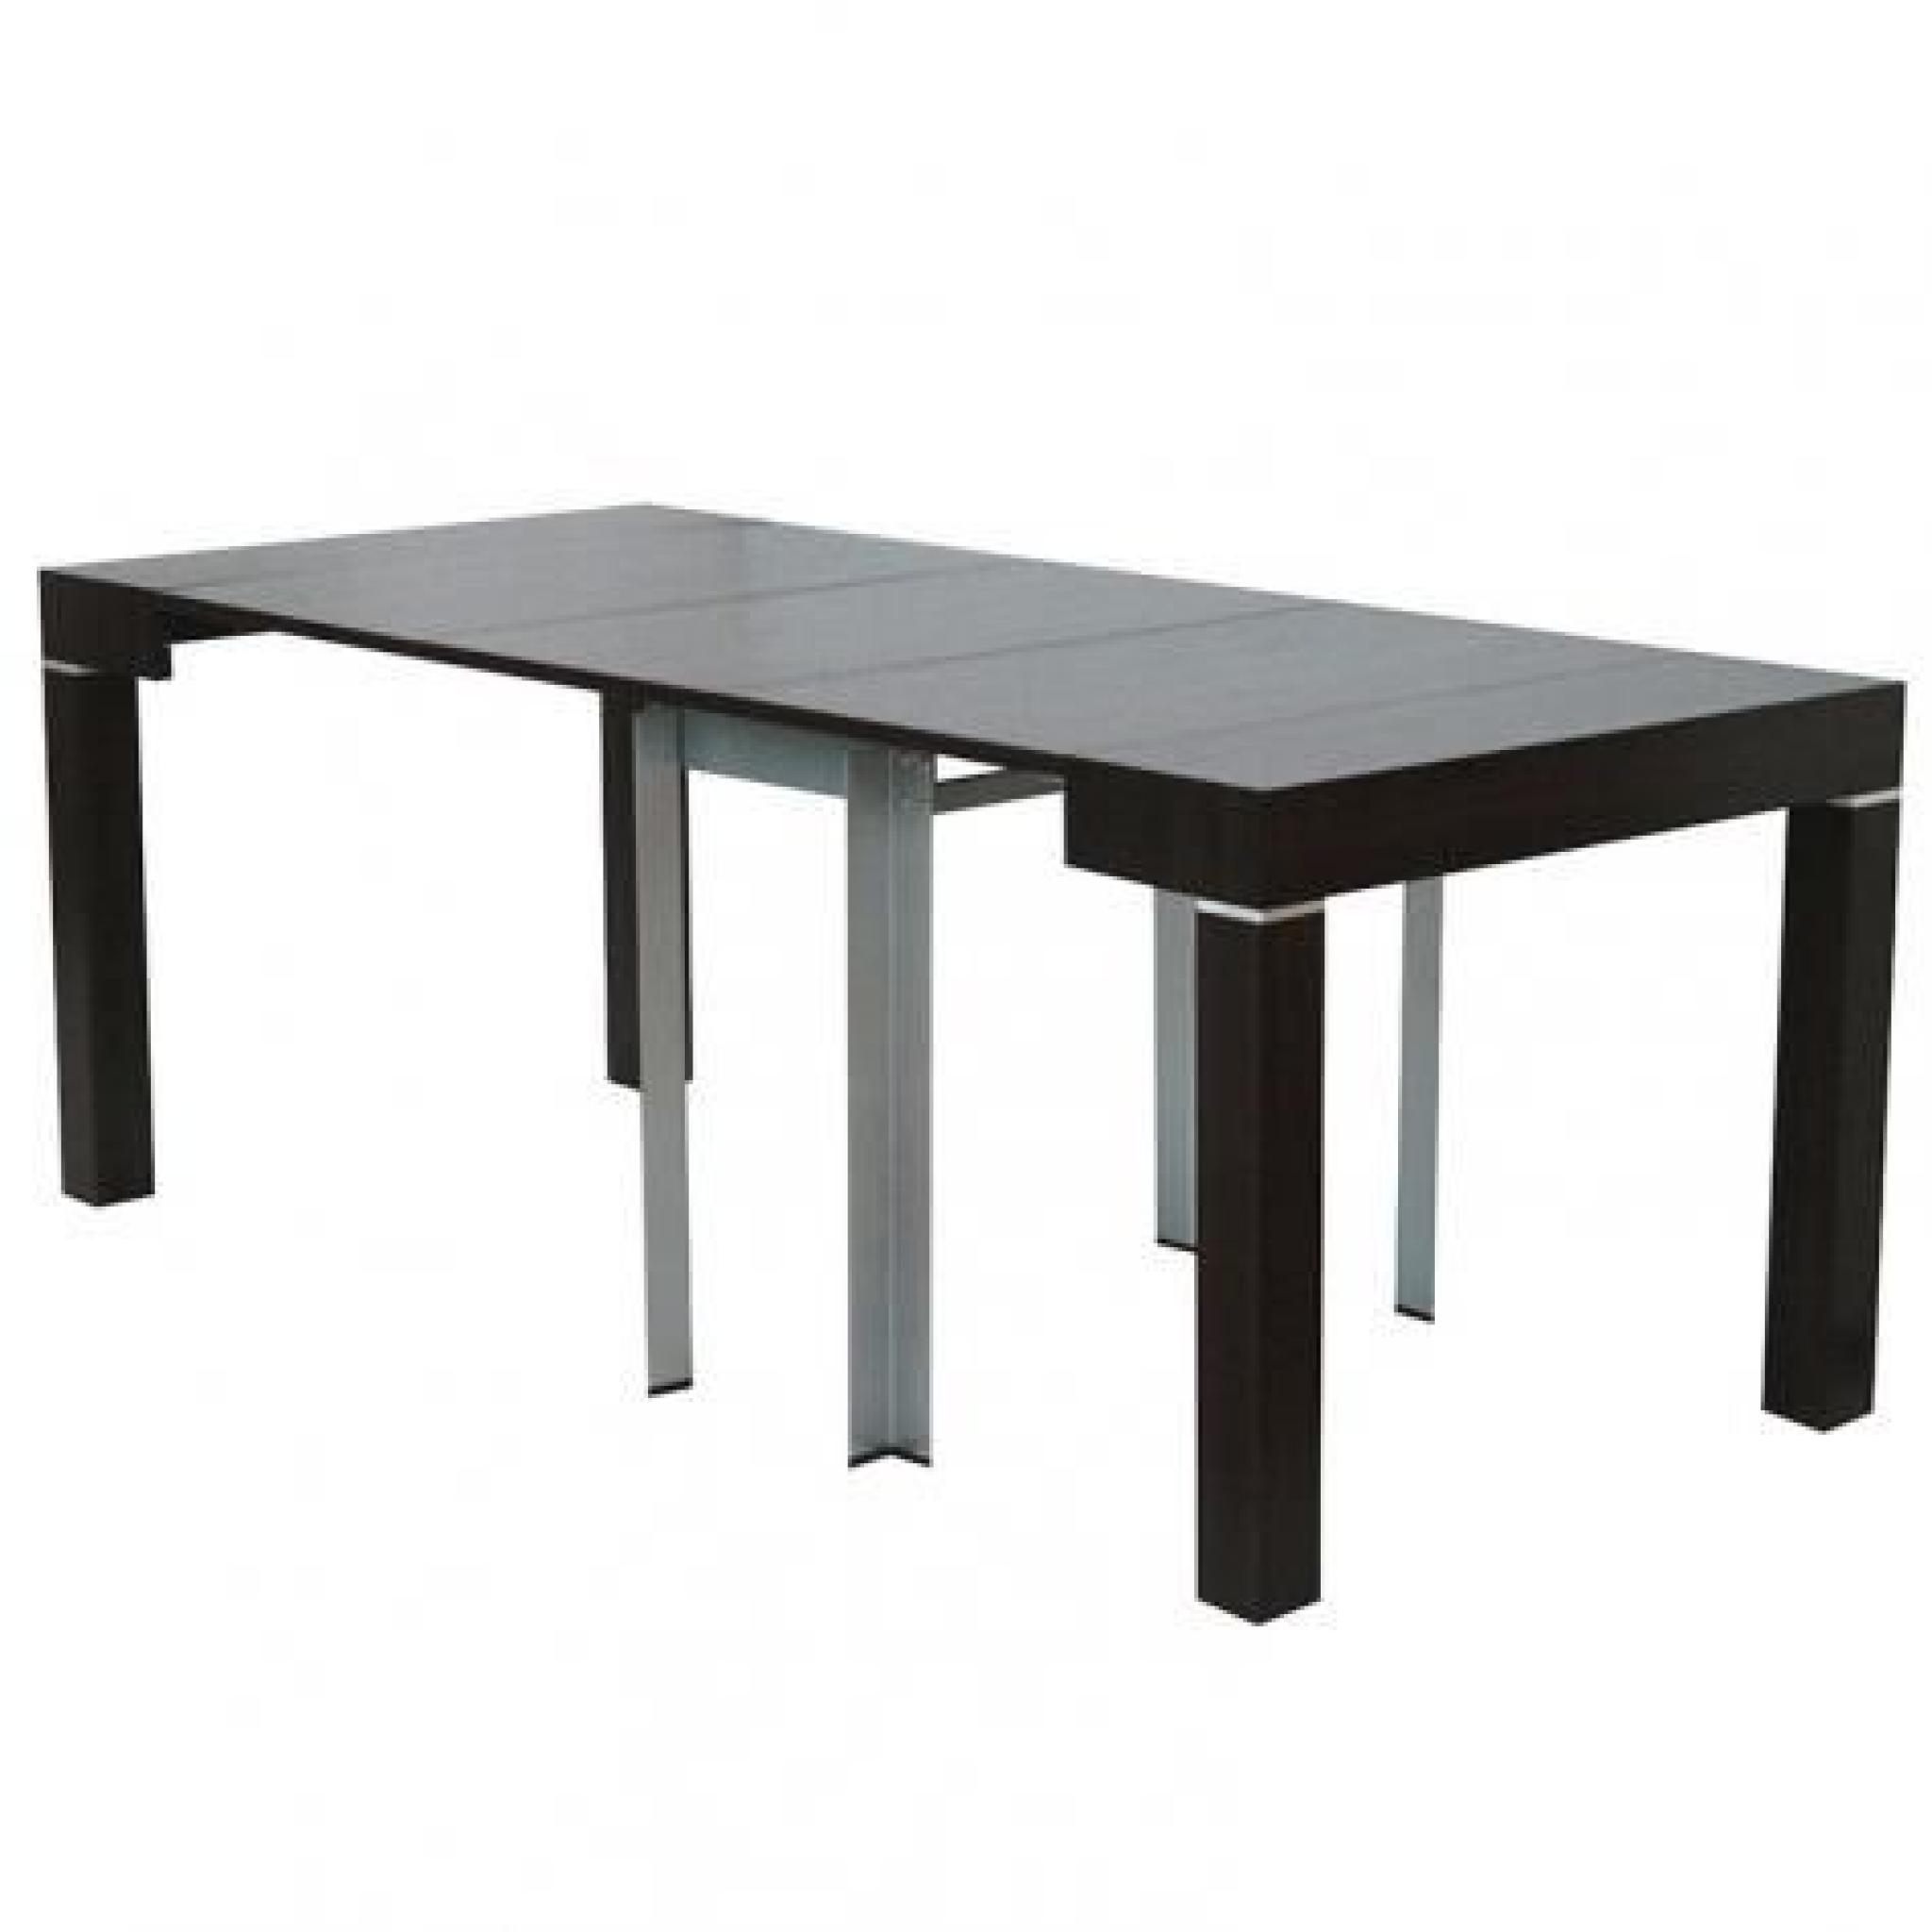 Table extensible pas chere maison design for Table console extensible rallonges incorporees